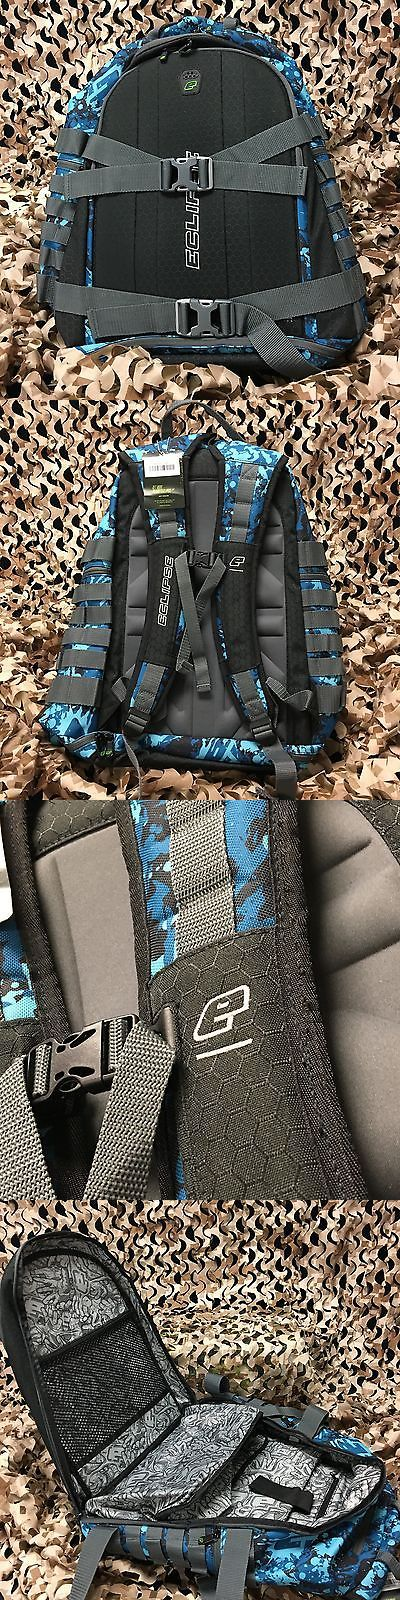 Equipment Bags and Cases 64672: New Planet Eclipse 2016 Gx Gravel Paintball Backpack Gear Bag - Ice Blue -> BUY IT NOW ONLY: $79.95 on eBay!